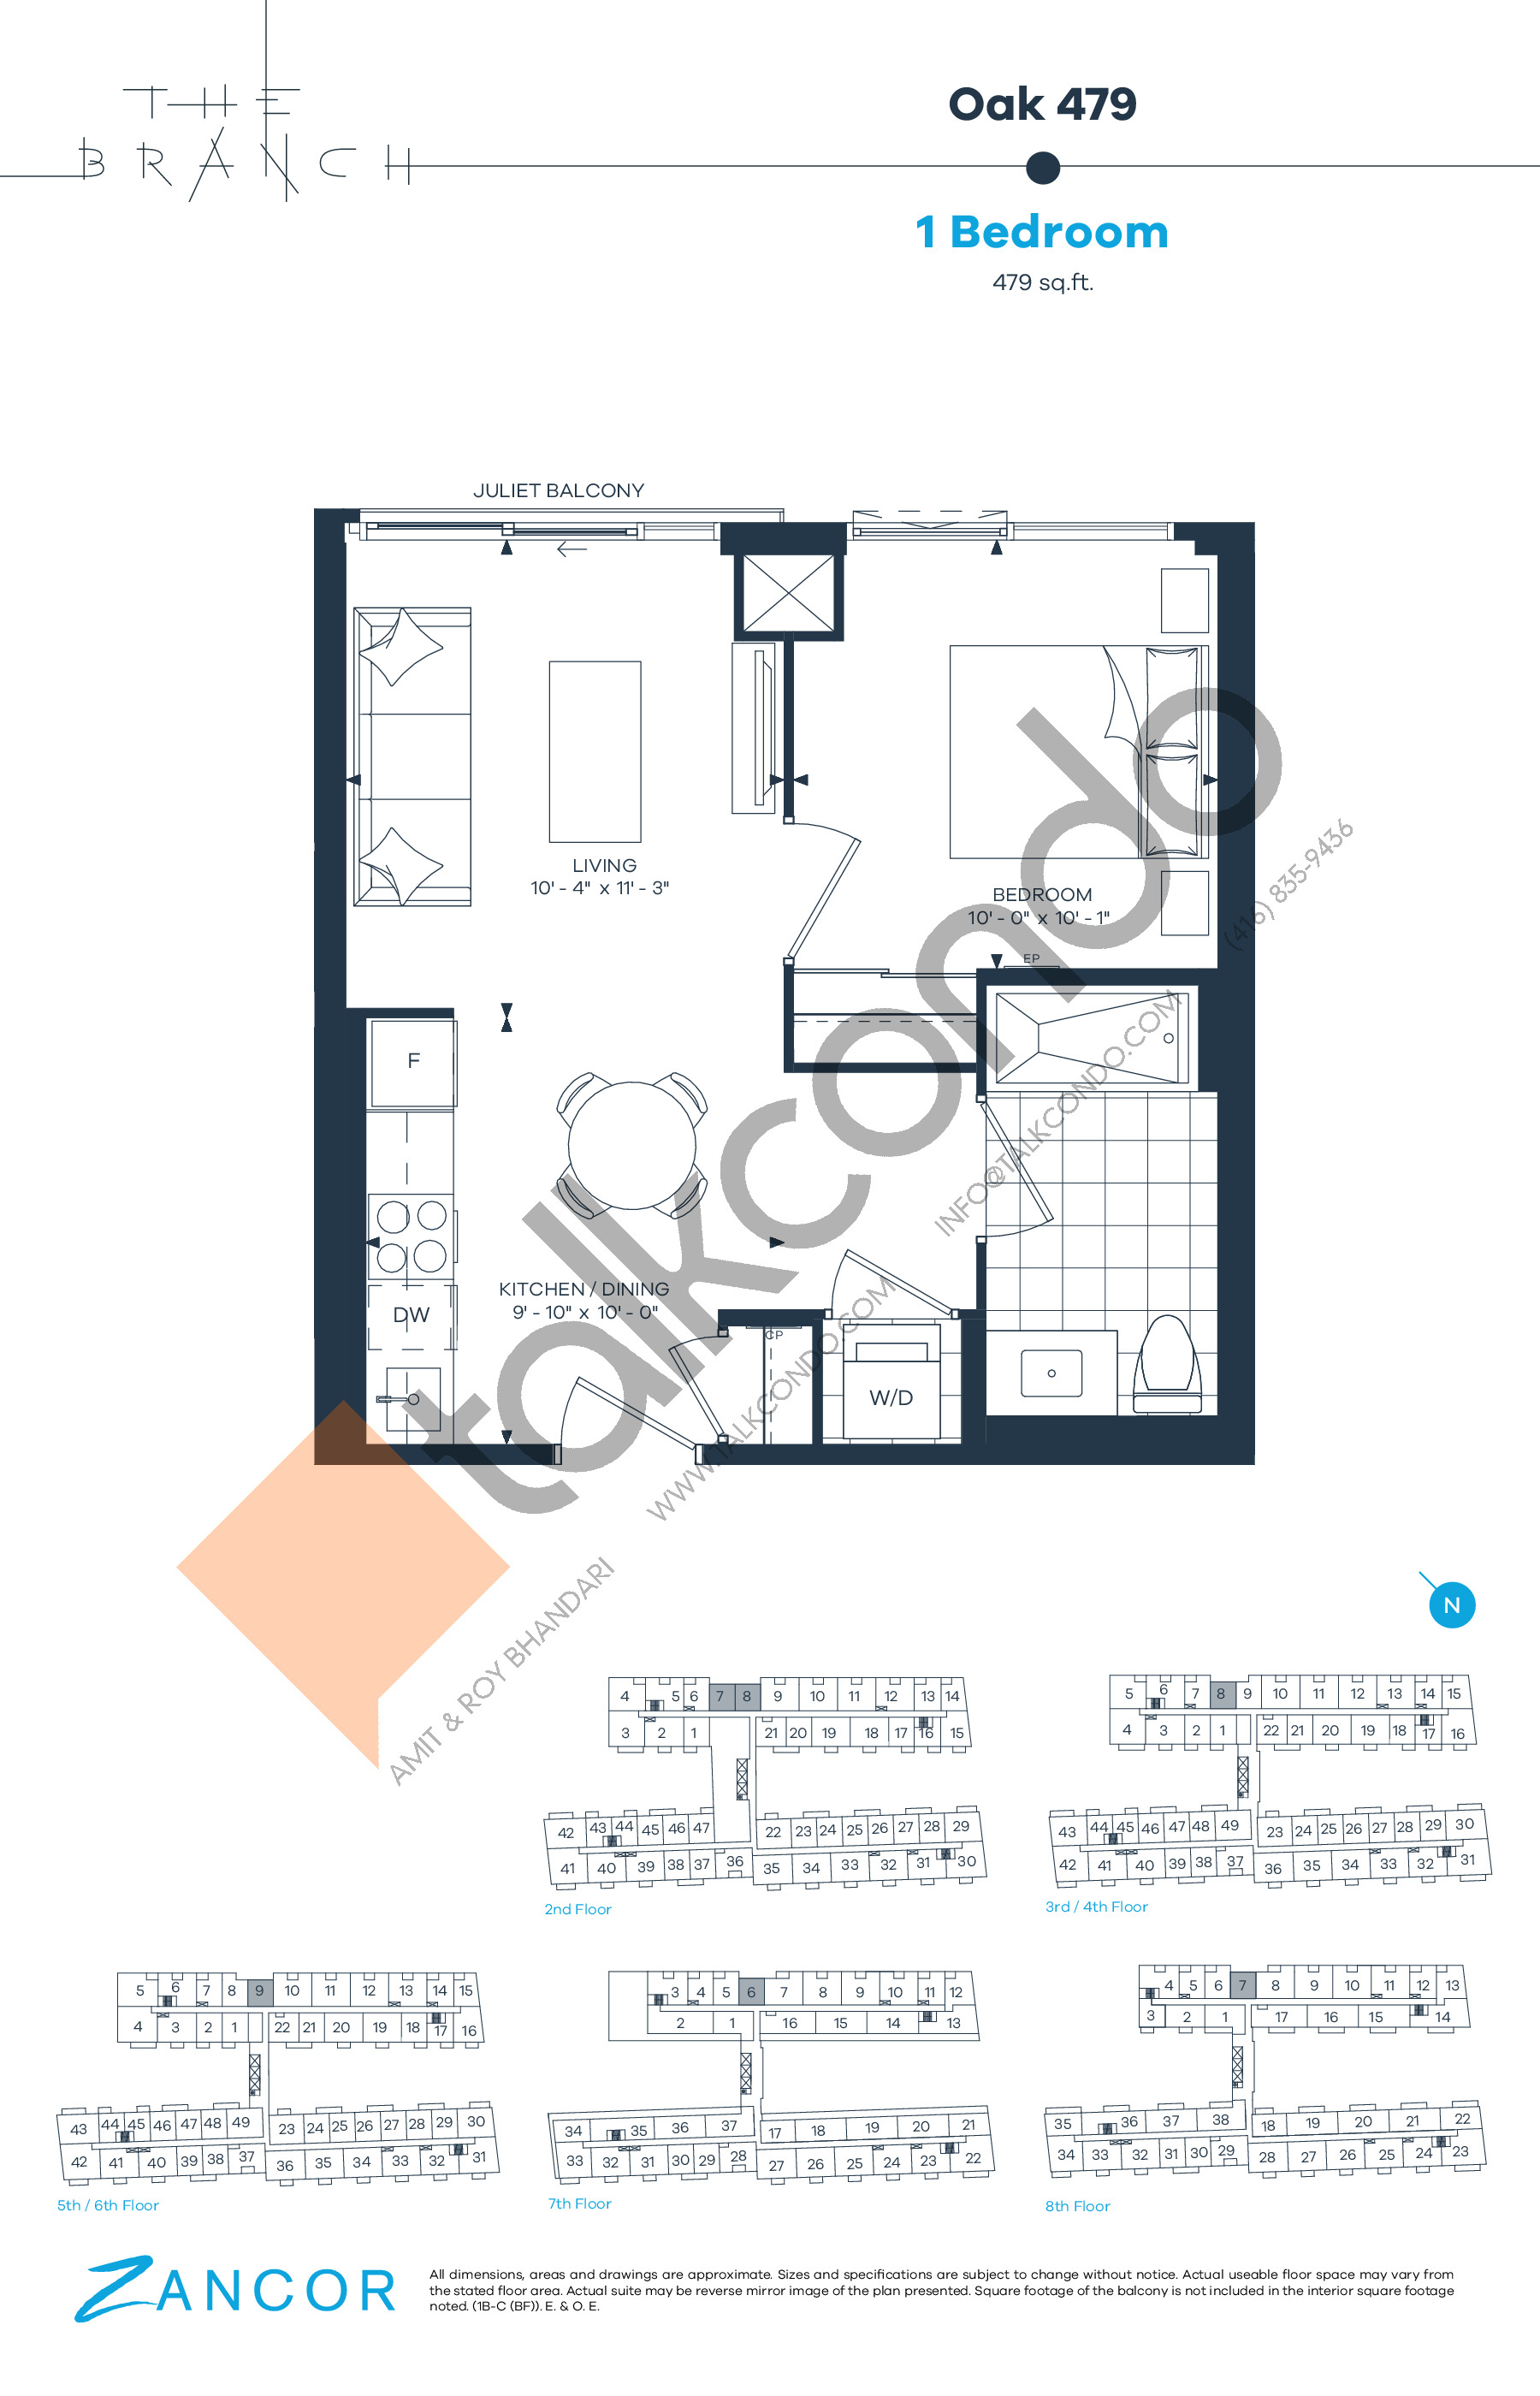 Oak 479 Floor Plan at The Branch Condos - 479 sq.ft